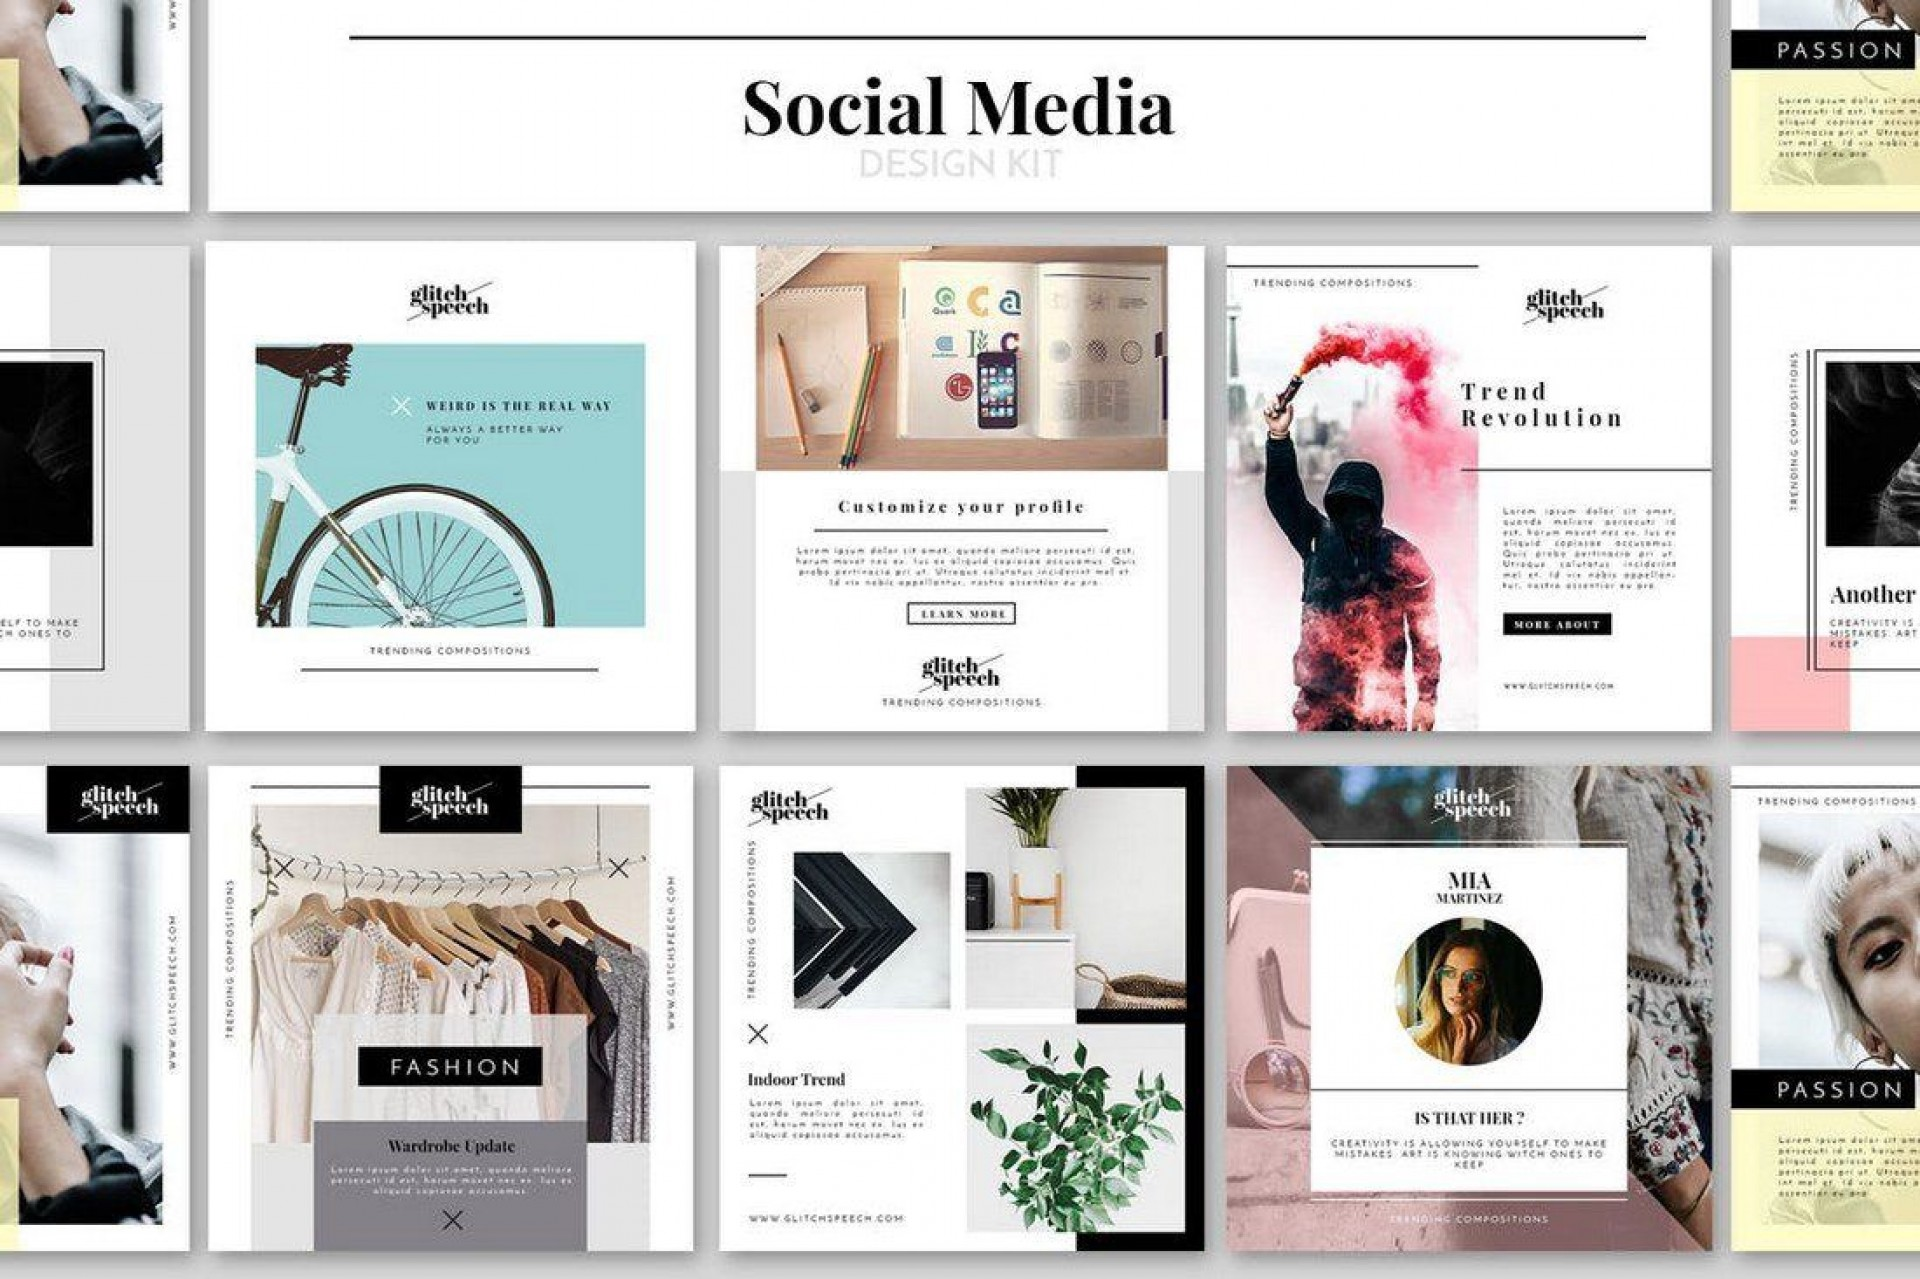 004 Incredible Social Media Web Template Concept  Templates Best Website Free Download1920